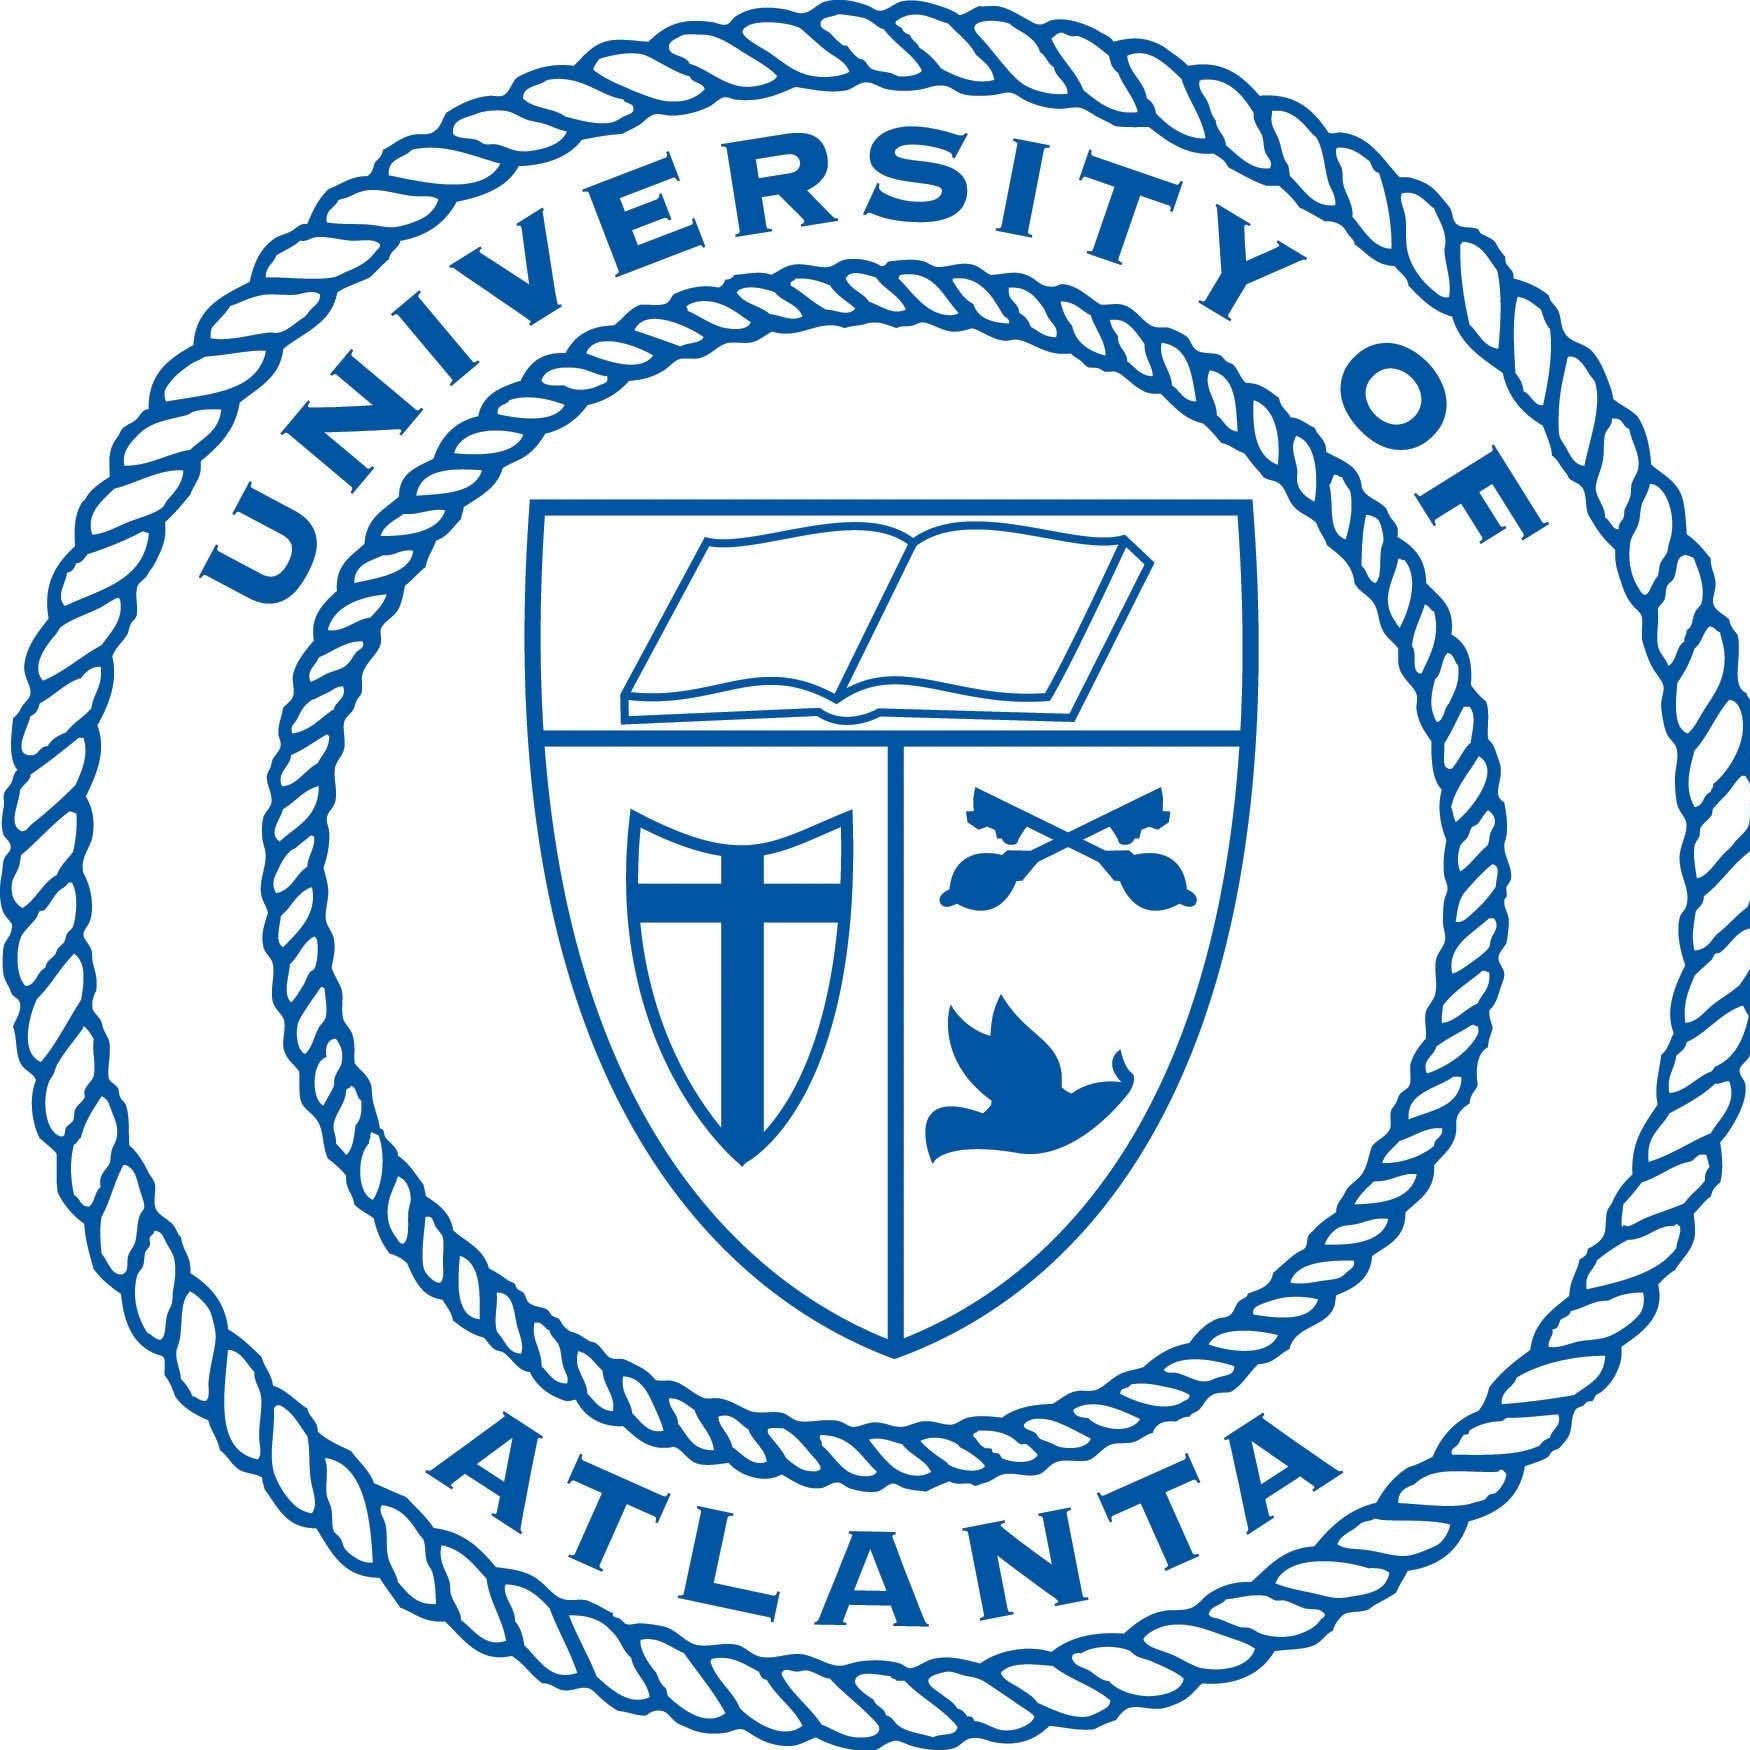 University of Atlanta's logo